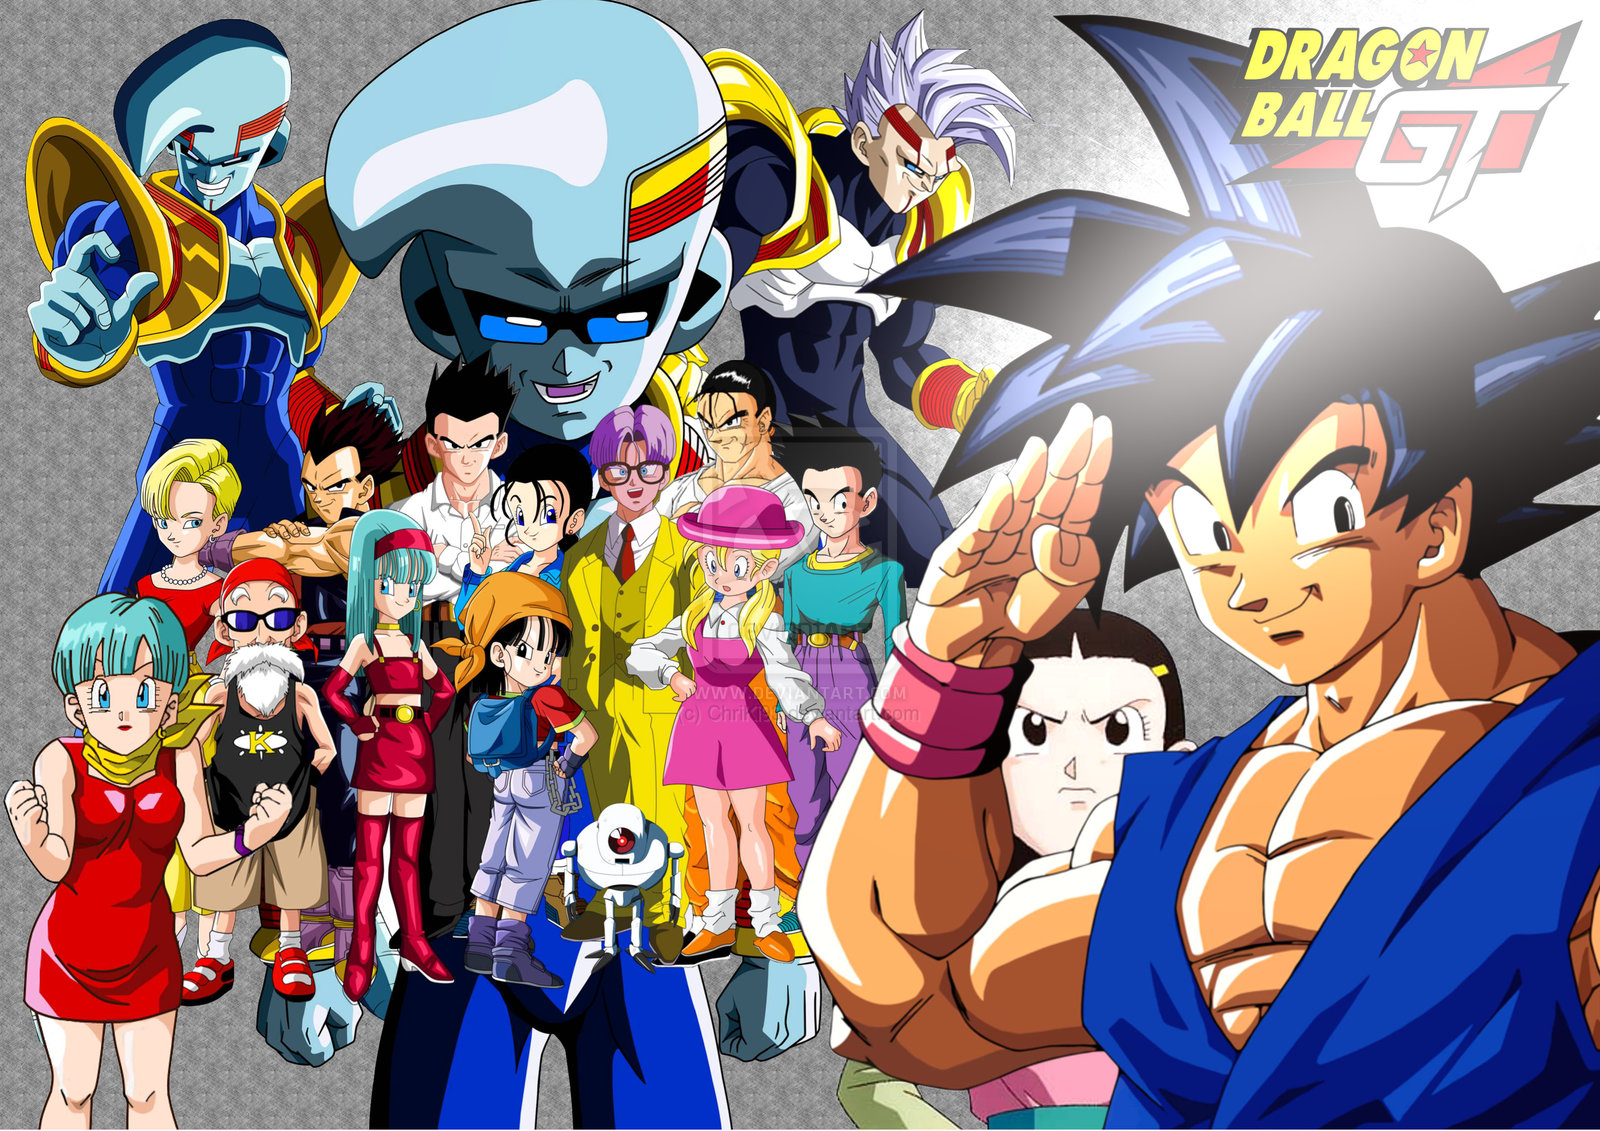 1600x1131px Dragon Ball Gt Desktop Wallpapers   Anime Wallpapers 1600x1131